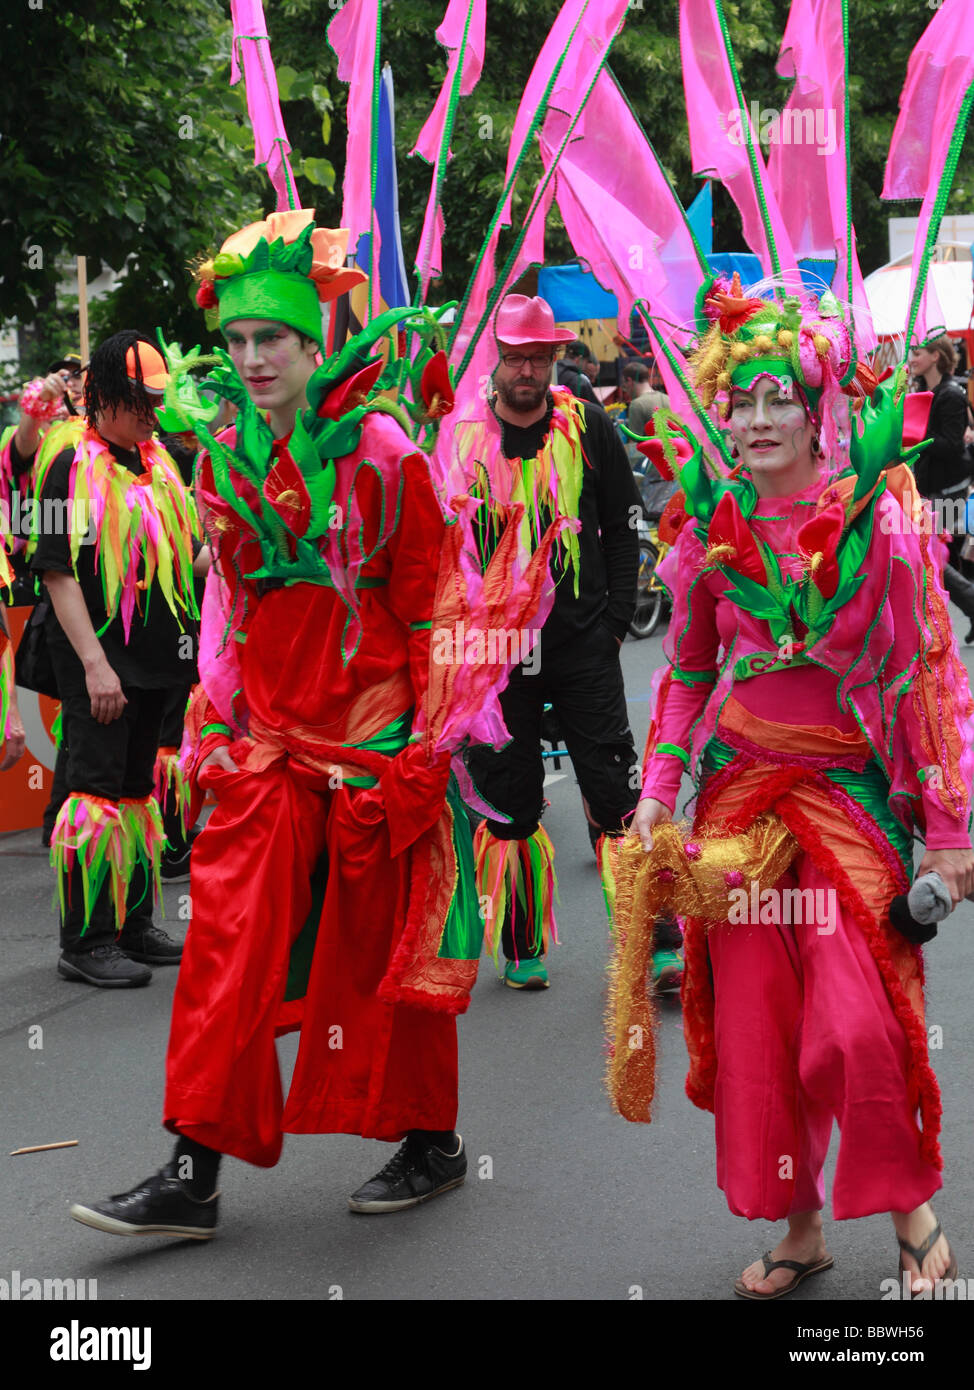 Germany Berlin Carnival of Cultures couple in costume - Stock Image